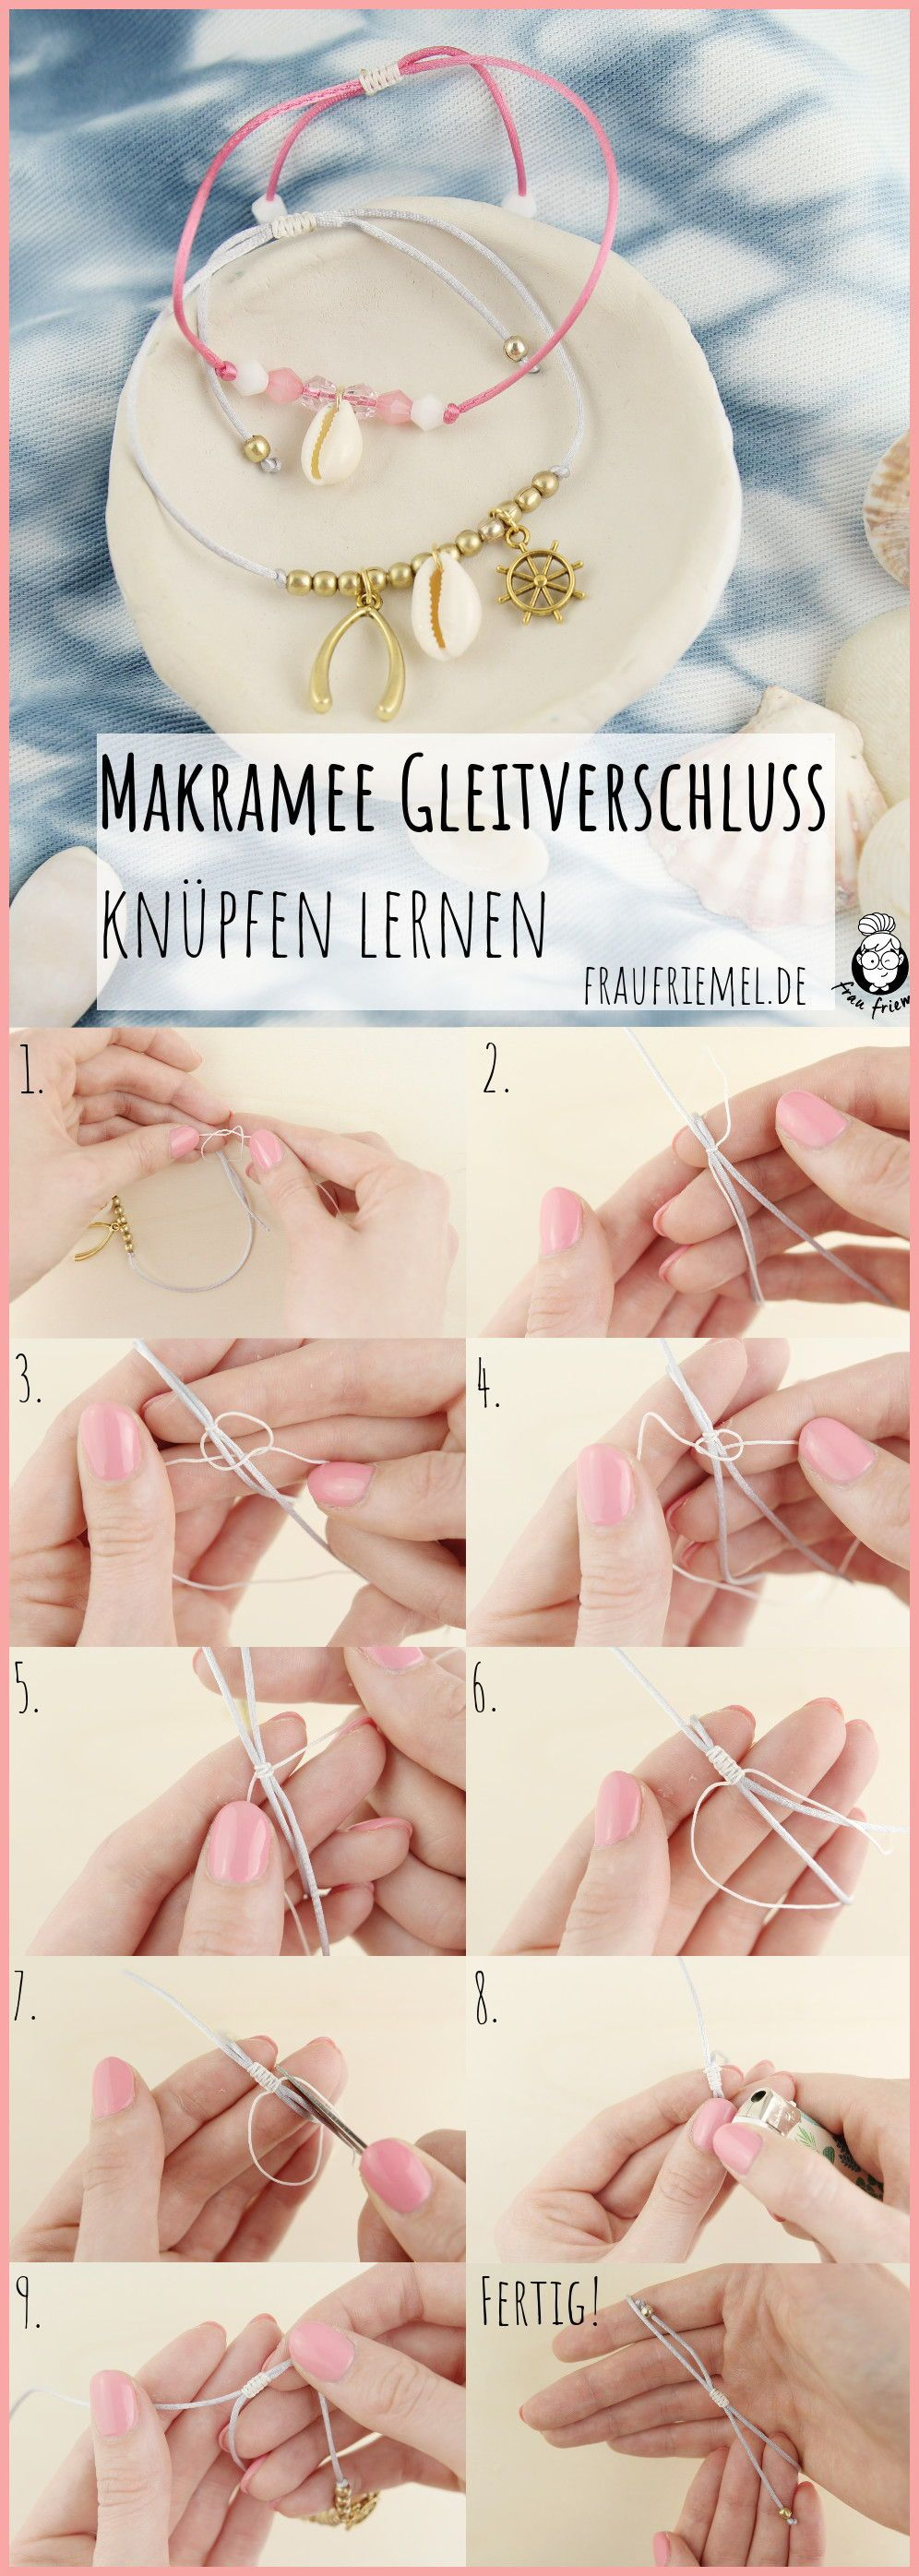 Photo of Make your own anklet with macrame clasp | Mrs. Friemel